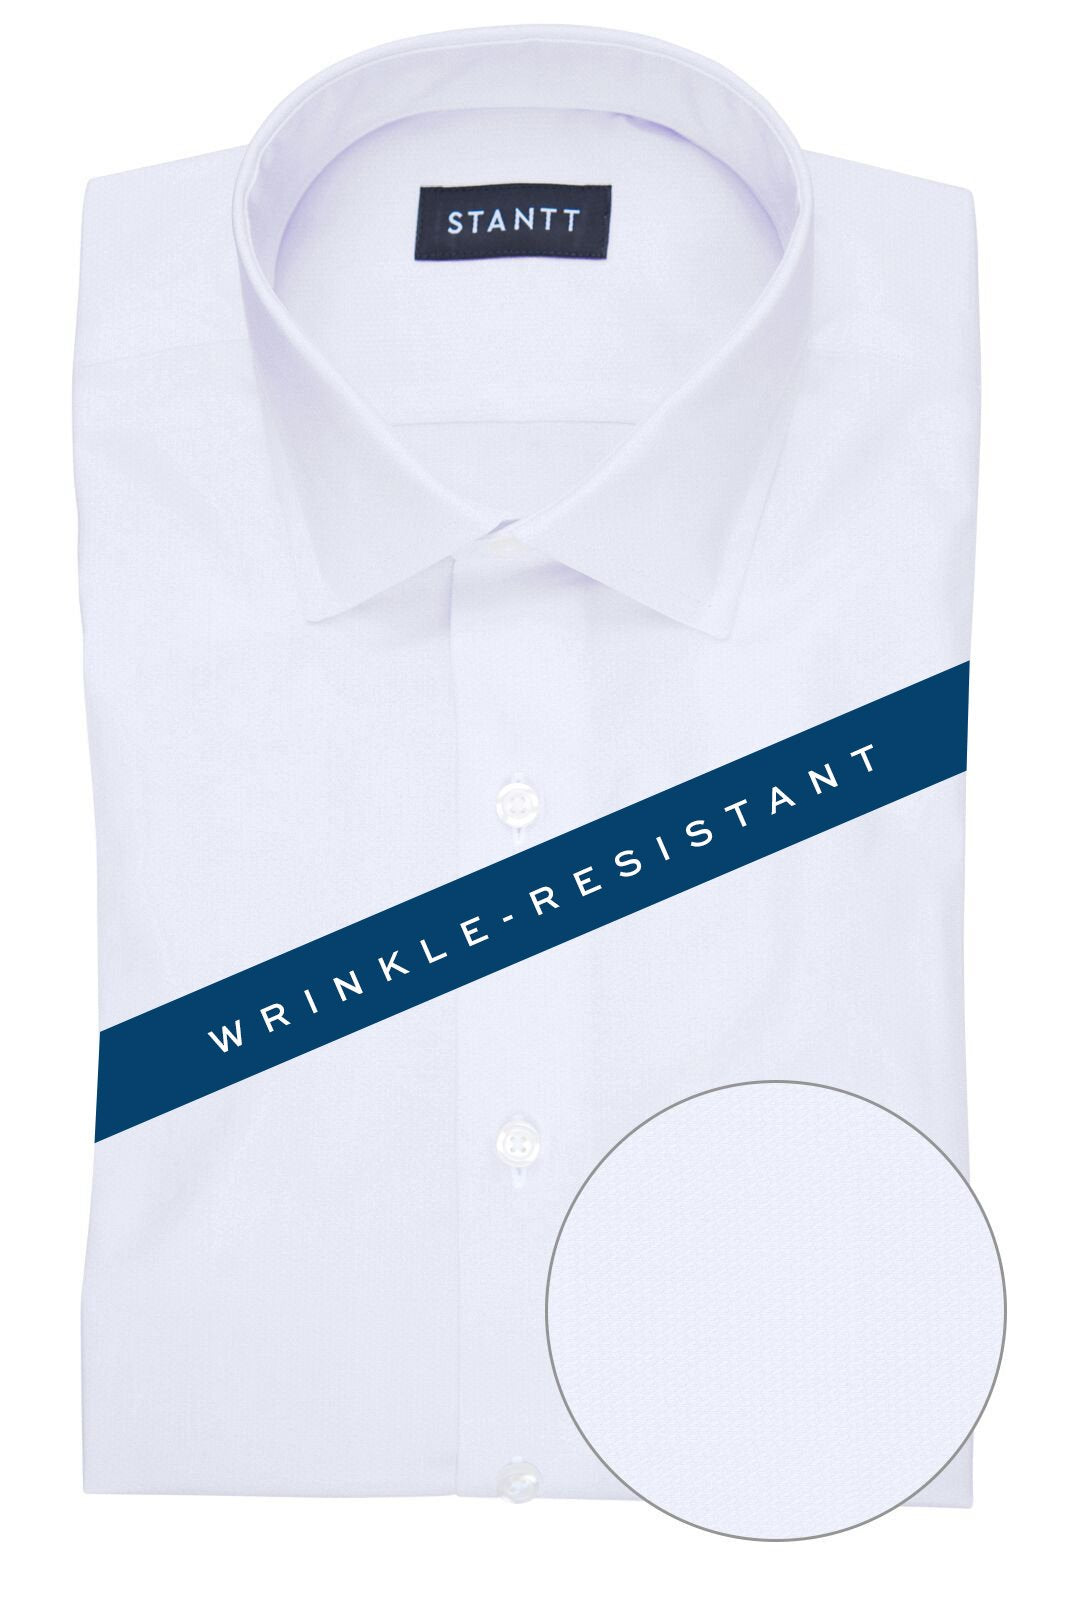 Wrinkle-Resistant White Heart Dobby: Modified-Spread Collar, French Cuff